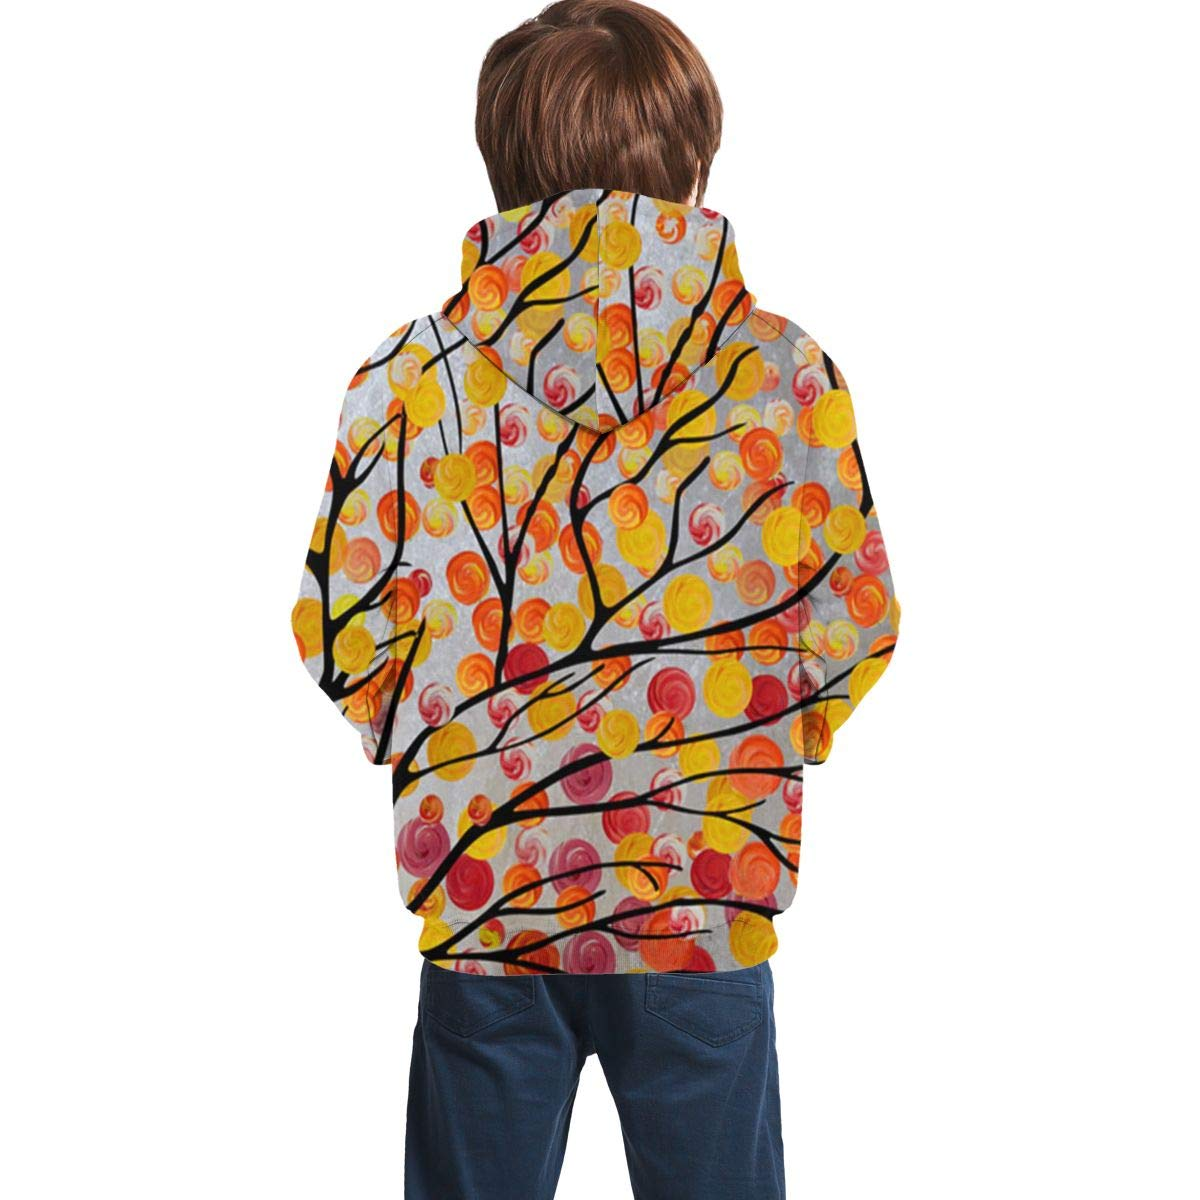 Youth 3D Print Abstract Art Oil Painting Tree Hooded Sweatshirt Kids